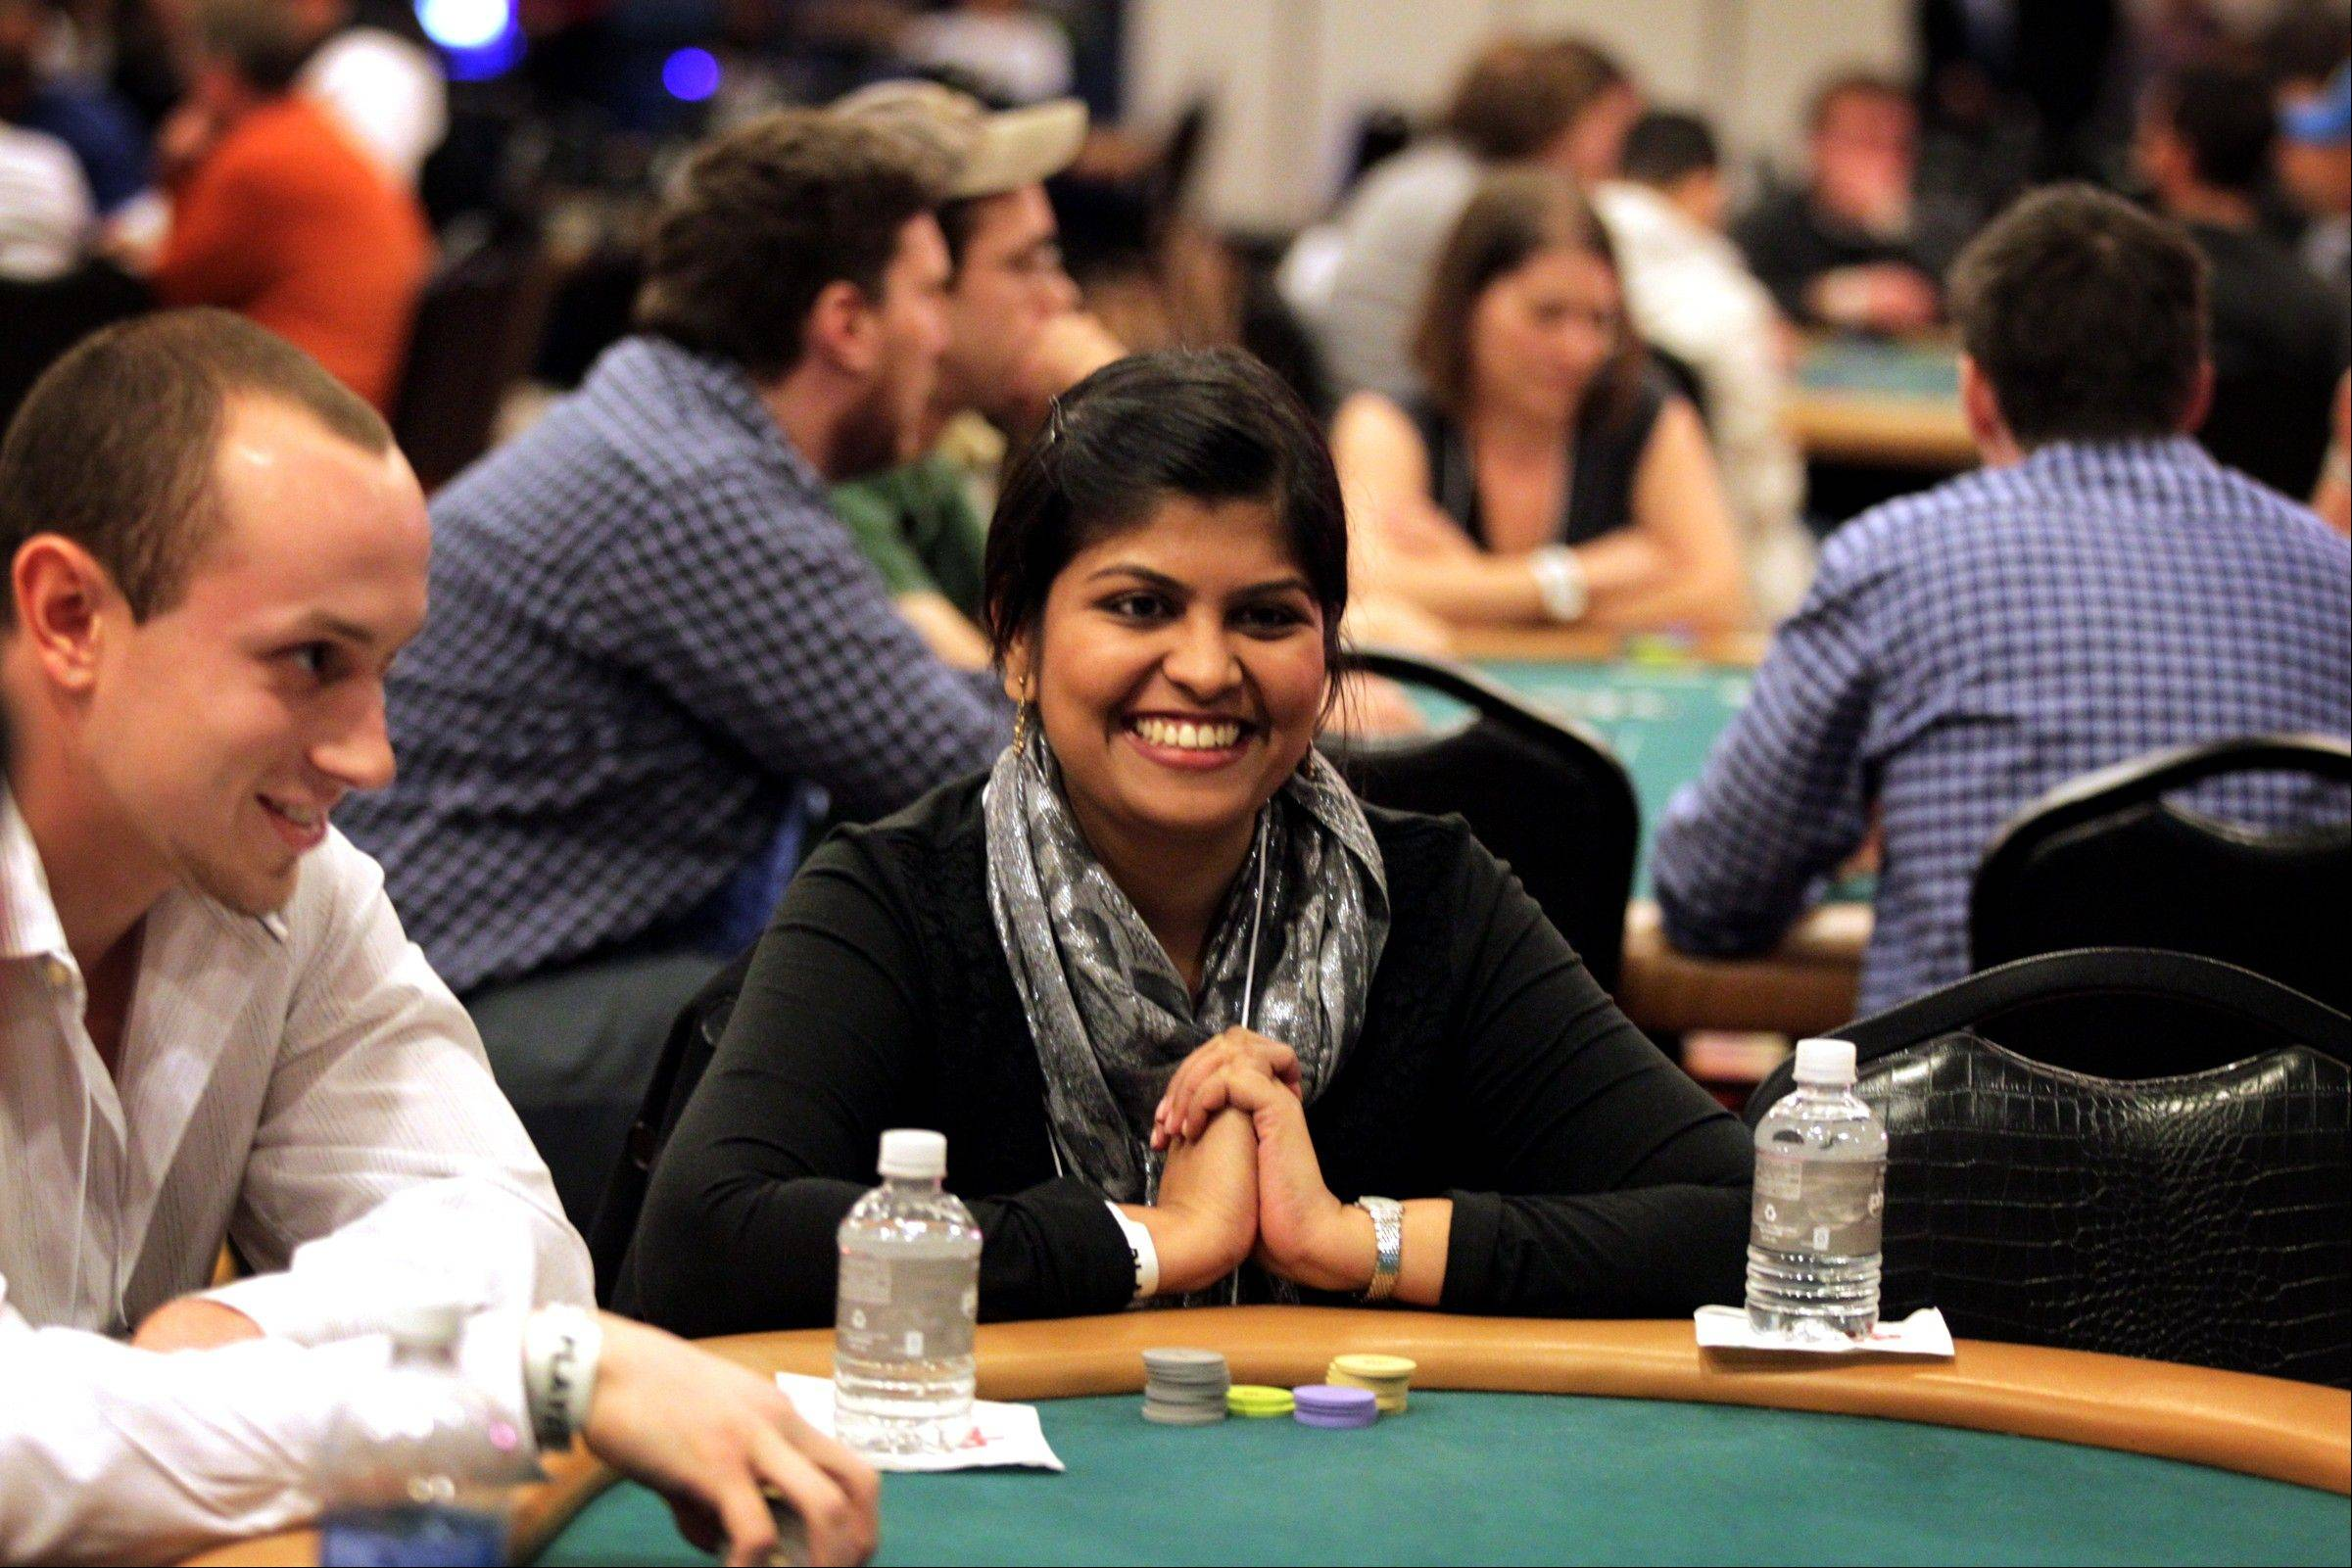 Rajashree Todmal of Carnegie Mellon University plays poker during the MBA Poker Championship and Recruitment Weekend at Planet Hollywood in Las Vegas.